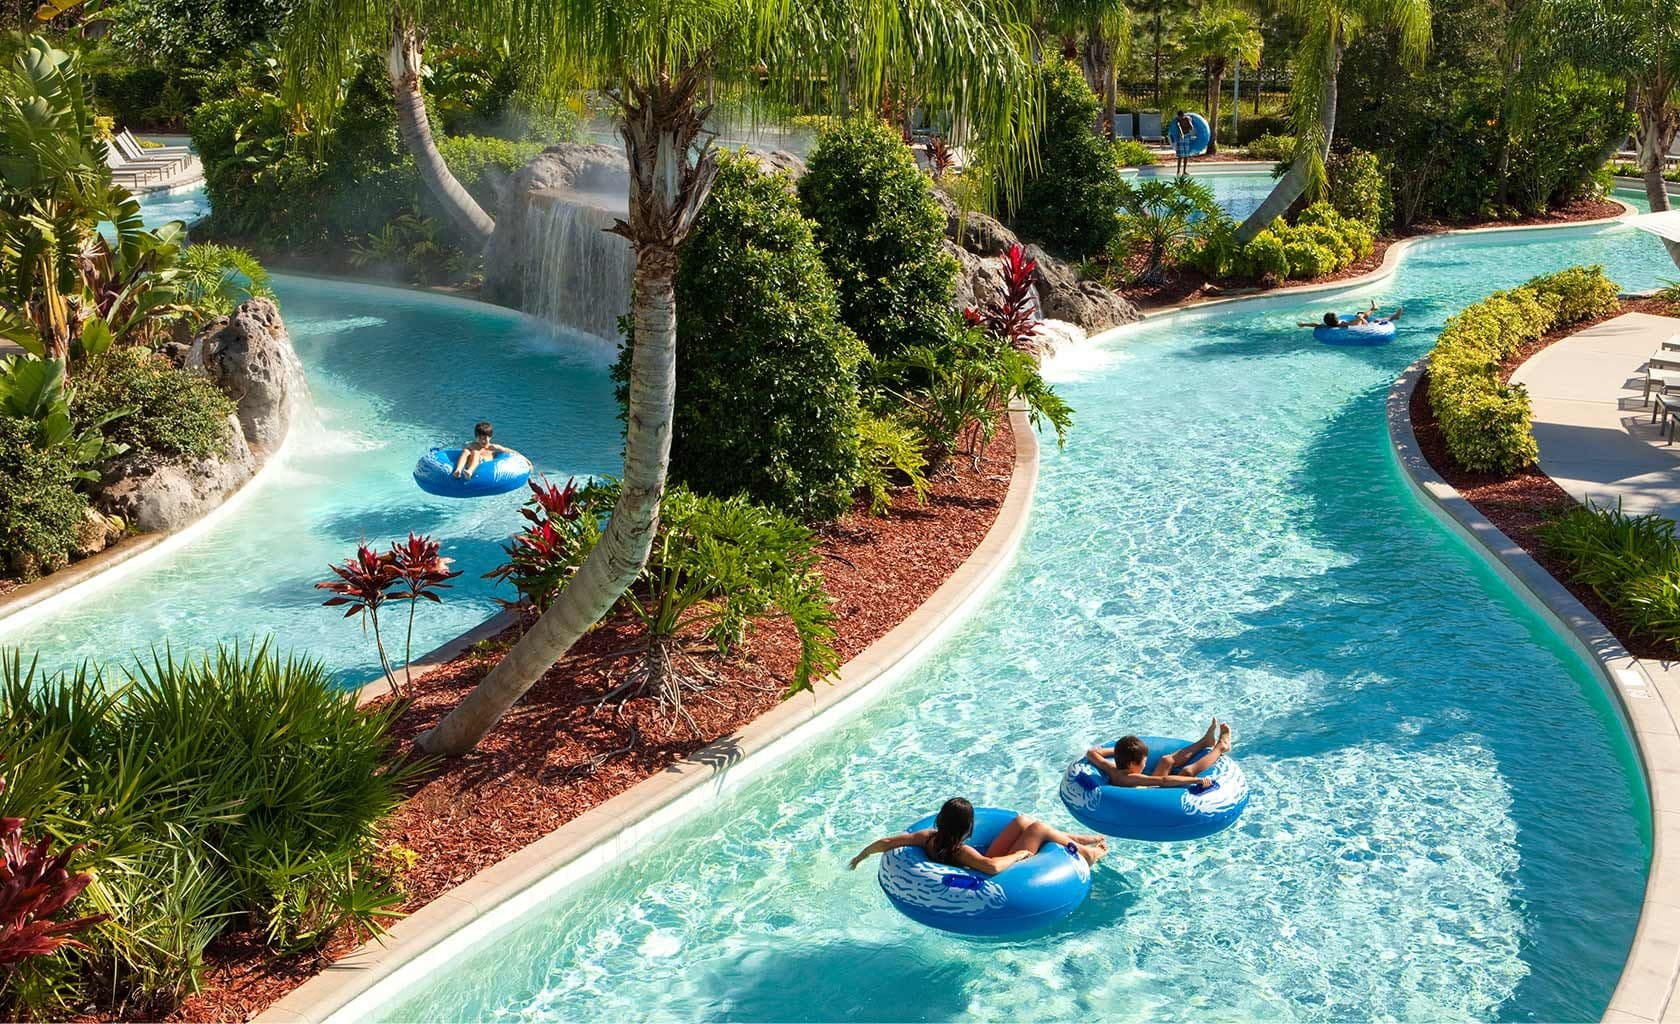 hilton orlando - resort near seaworld & universal